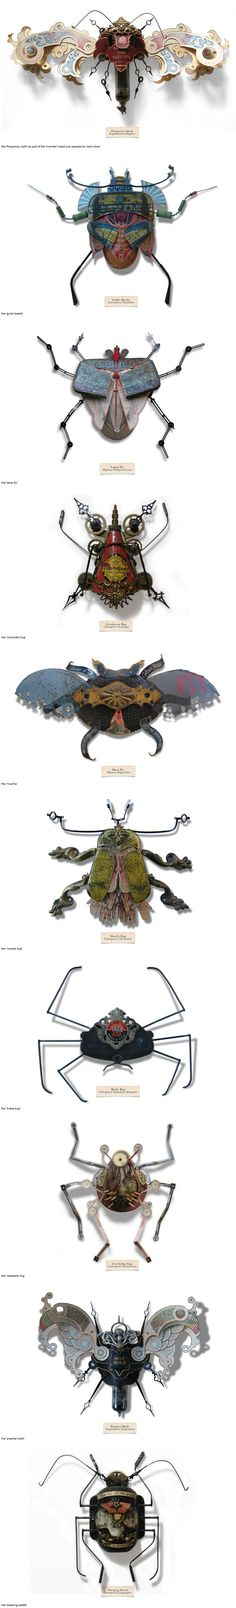 """Mark Oliver has created a series of insects called """"LitterBugs"""" brought to life entirely from trash; a species developed to adapt to the harsh, changing urban landscape. They are part of an invented genus, affectionately categorized in a document known as the """"compendium of carabid and terrestrial detritus""""  – each one having been given their own title and scientific name, some based off the found objects from which they are built."""